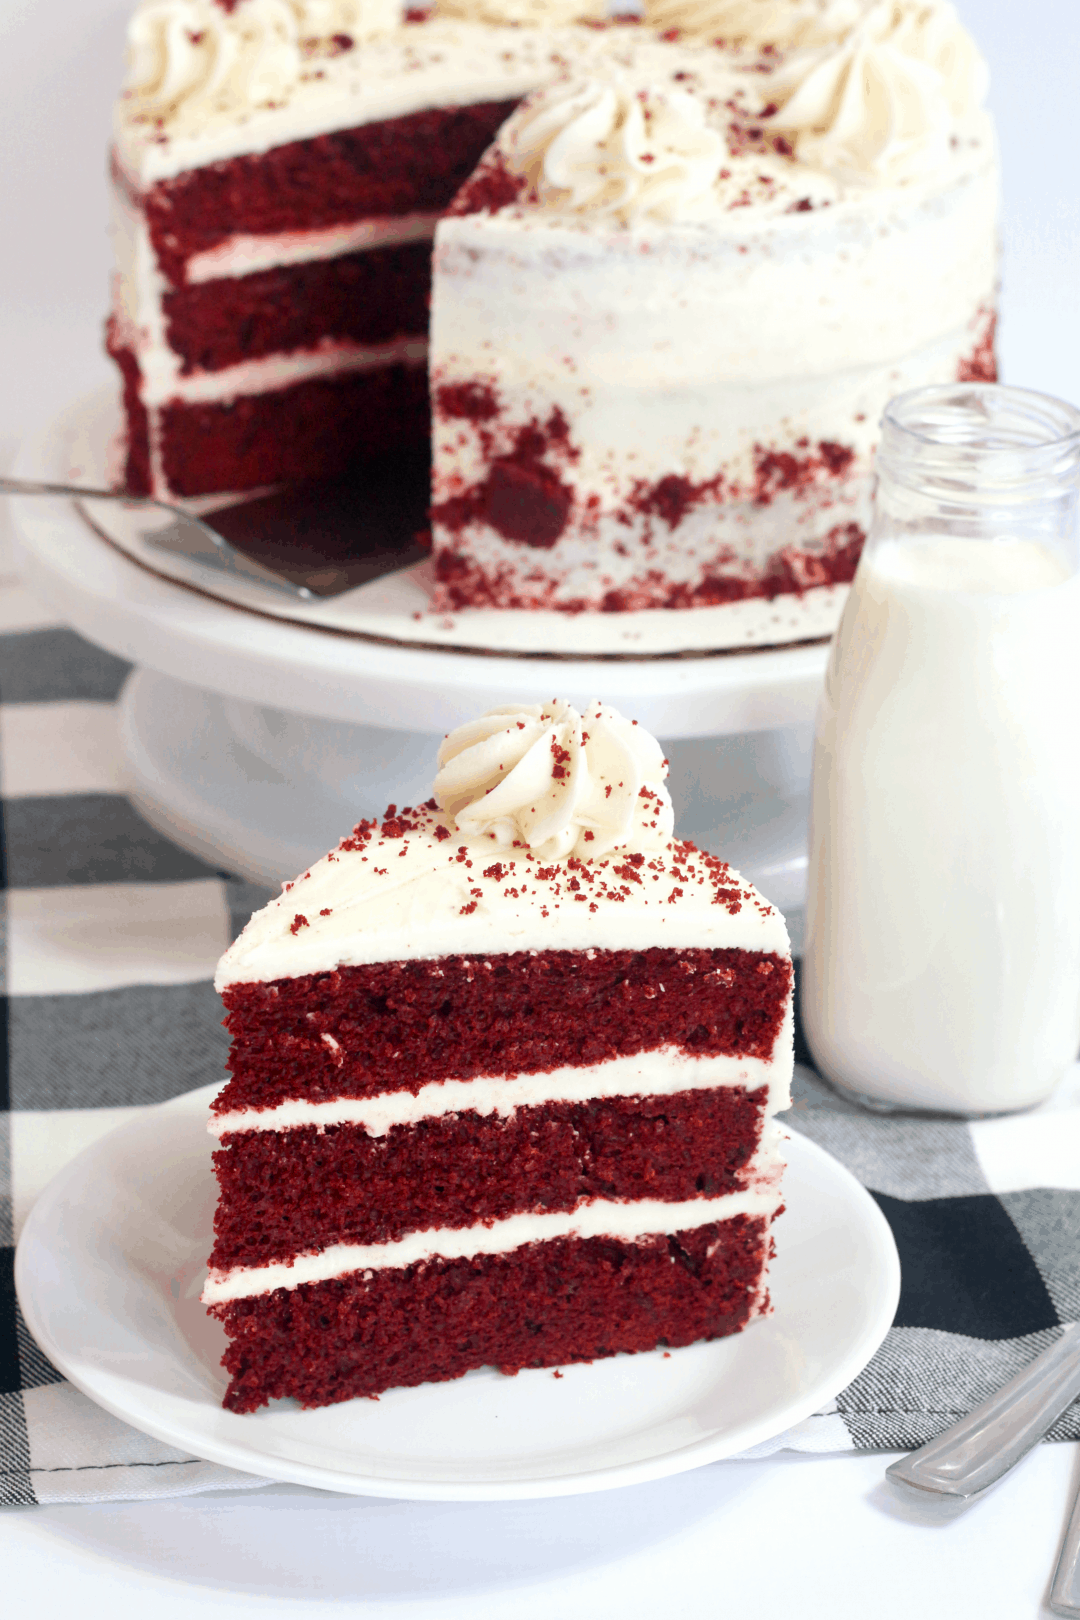 Red velvet layered cake